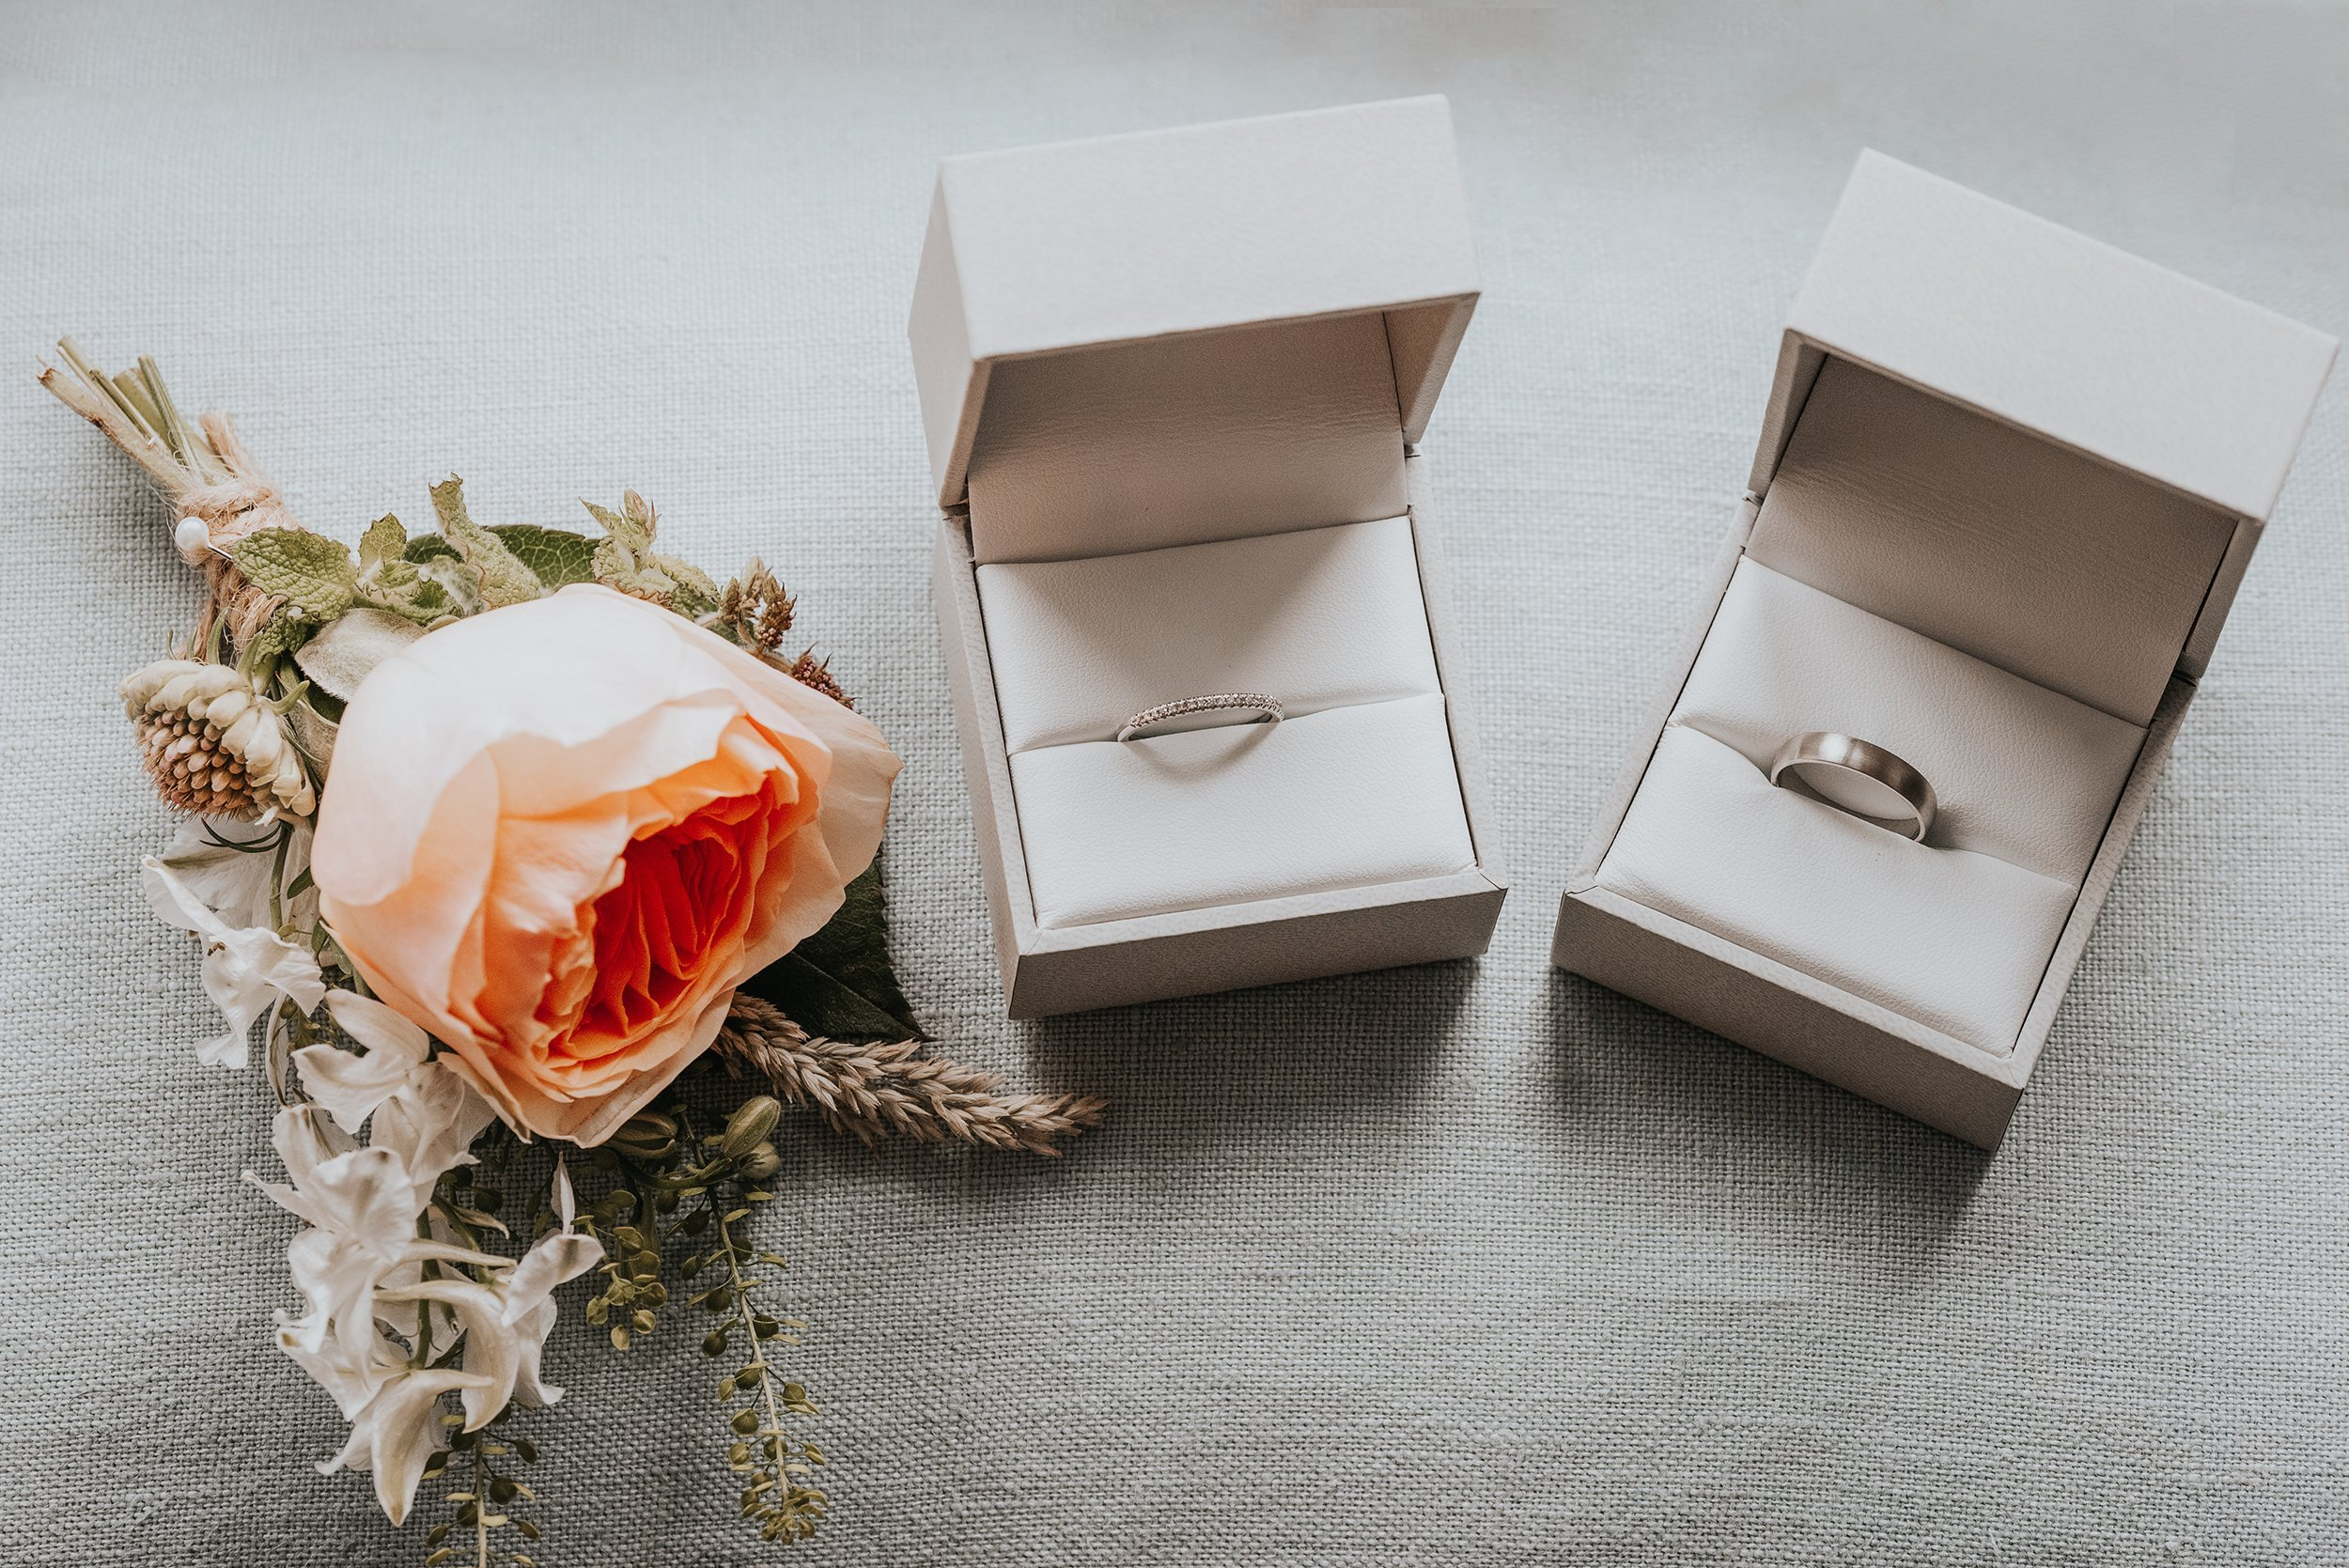 Wedding rings in boxes and button hole flower